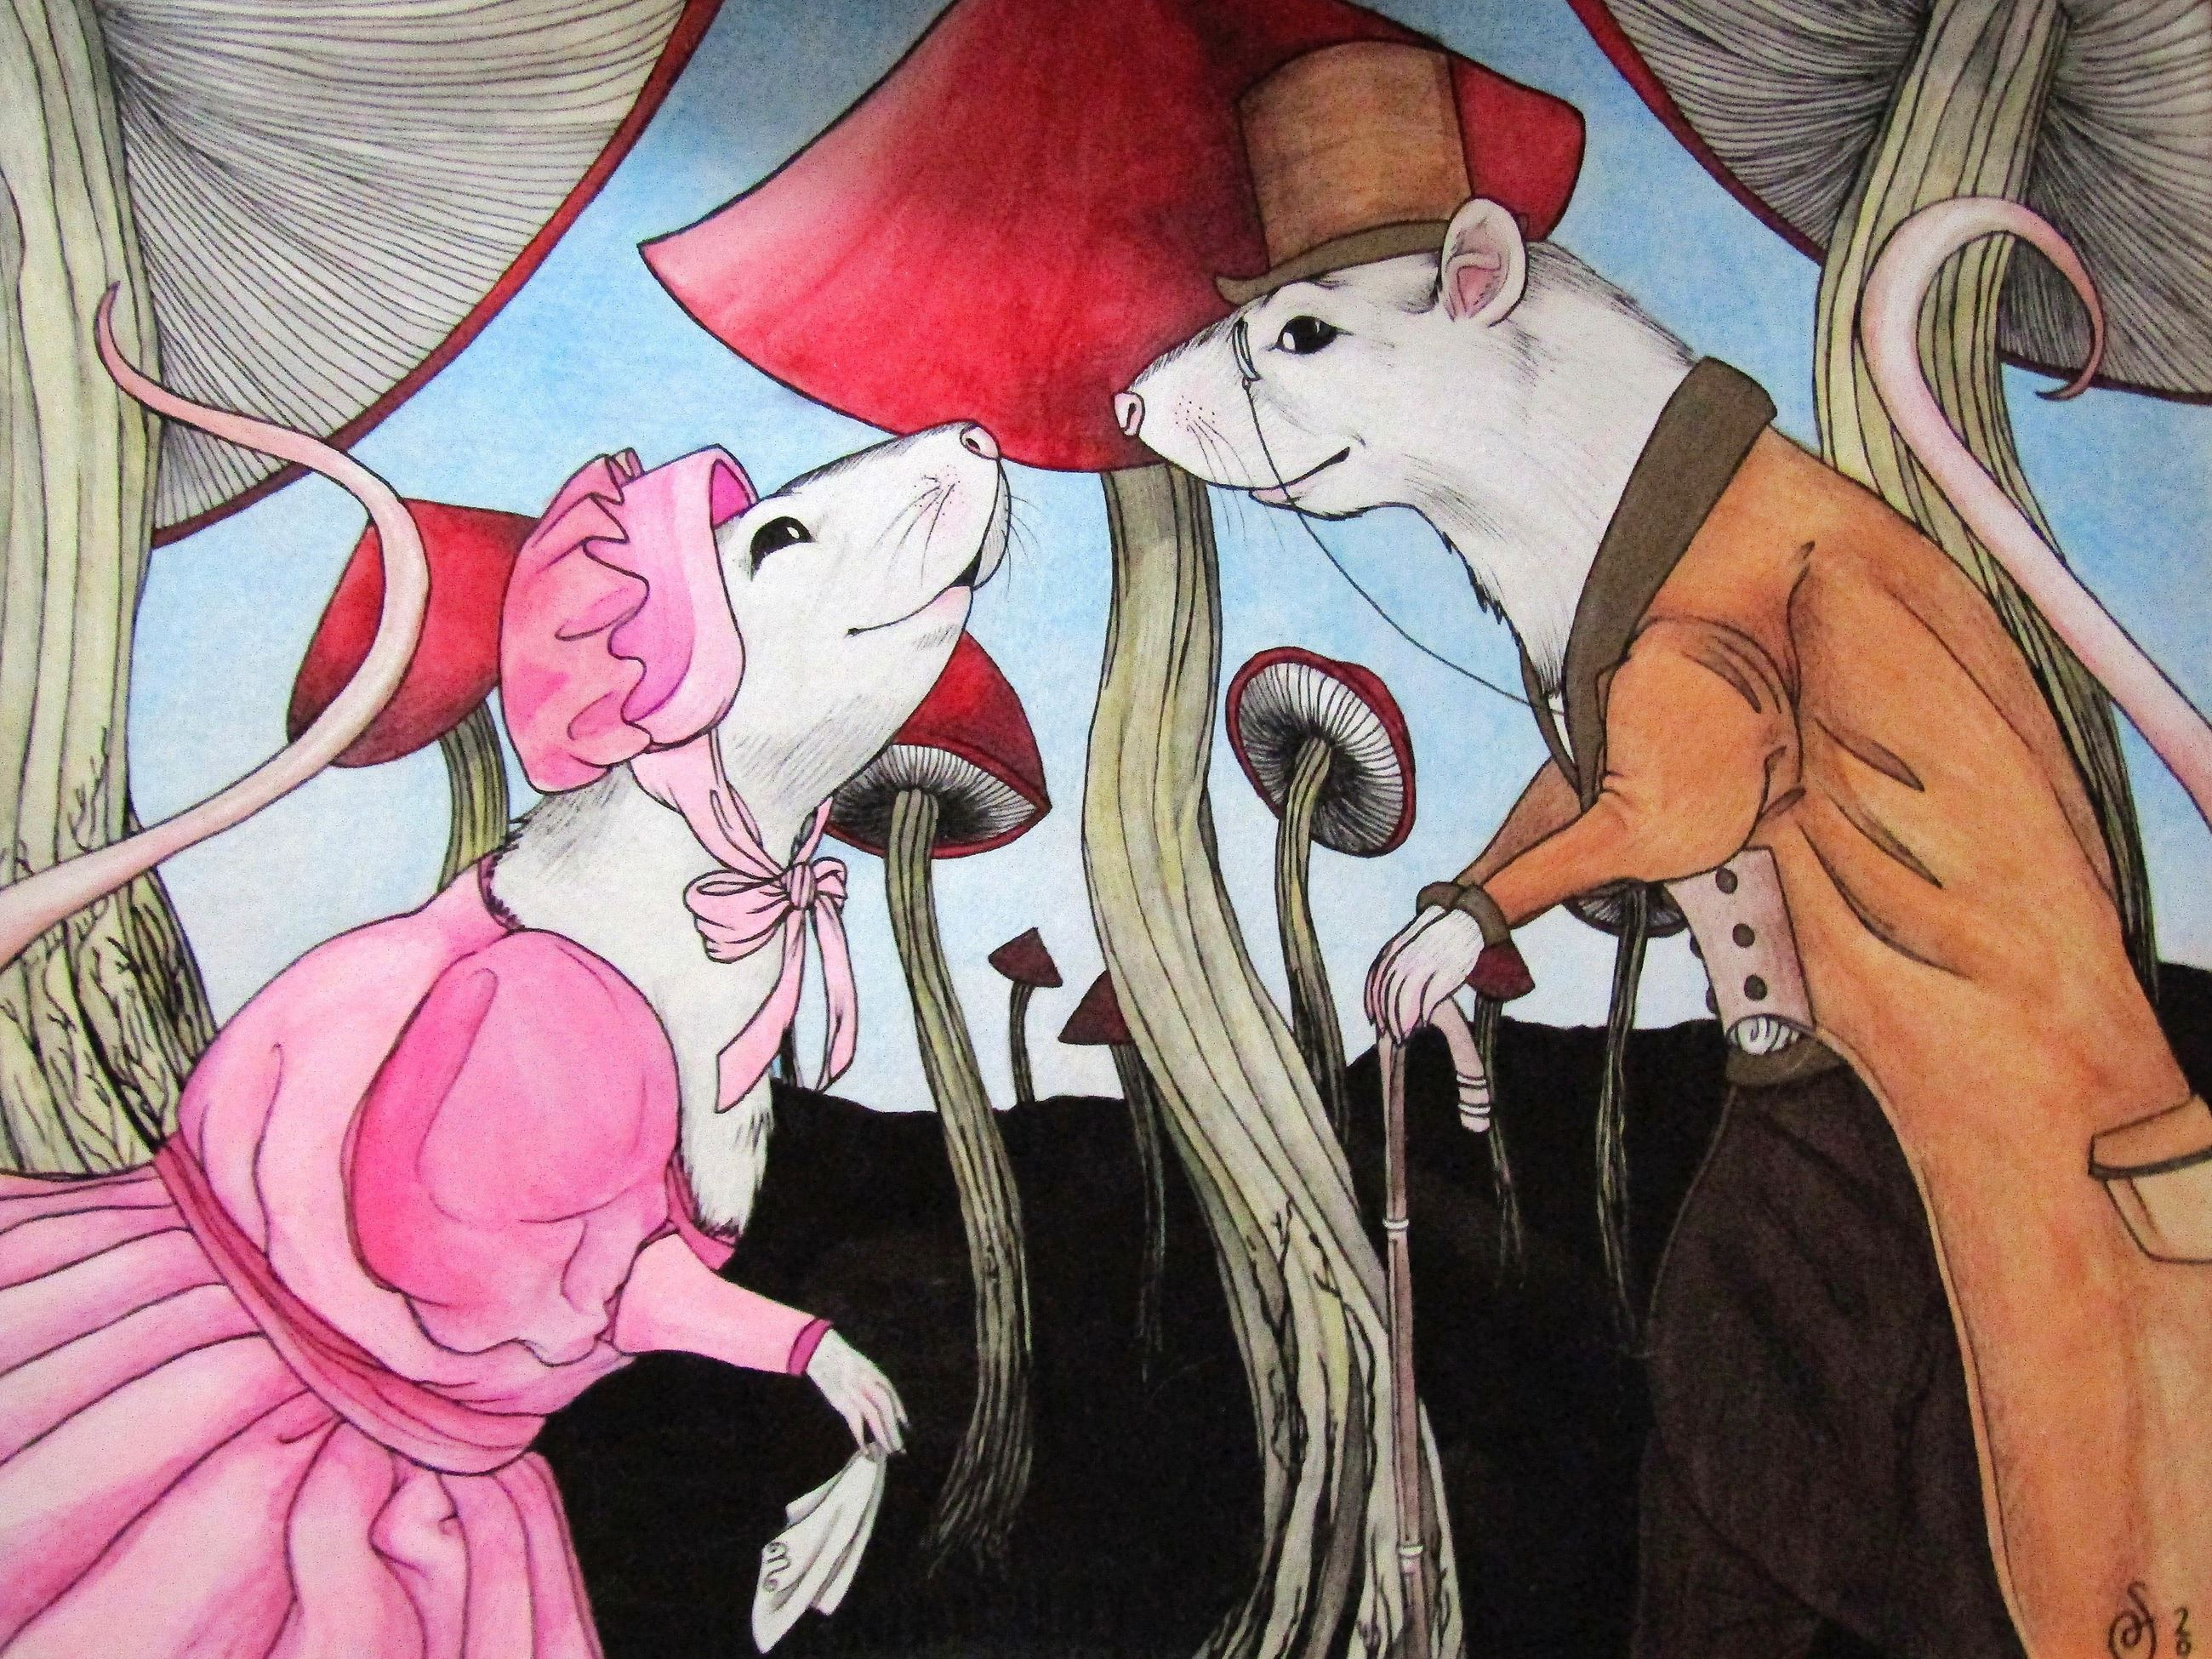 Meeting by the Mushrooms- Sara Berndt